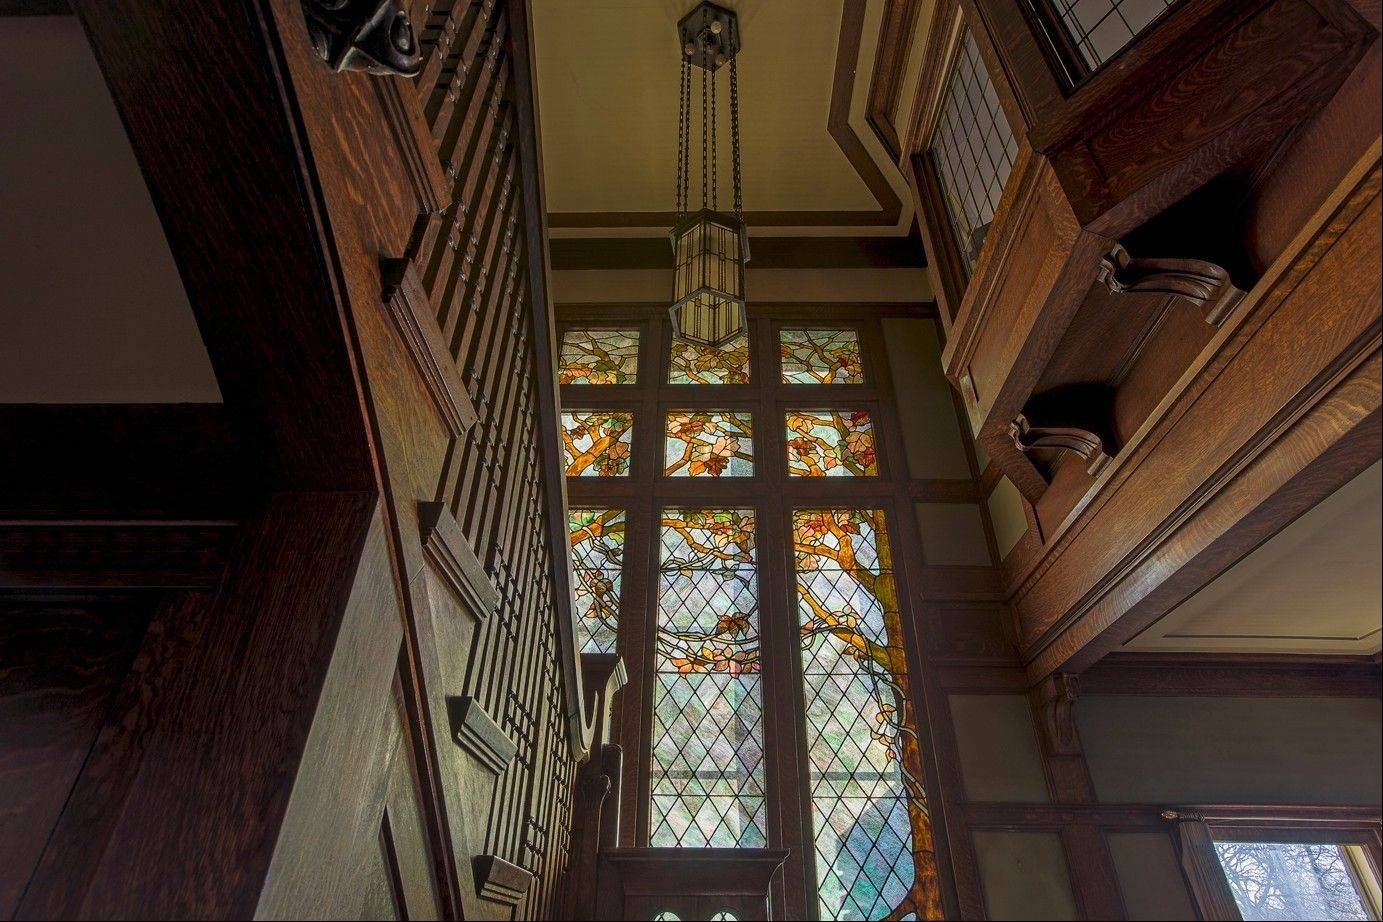 Original art glass and oak millwork grace the stairwell of the Dr. Charles E. Cessna House, built in 1905 and designed by E.E. Roberts.